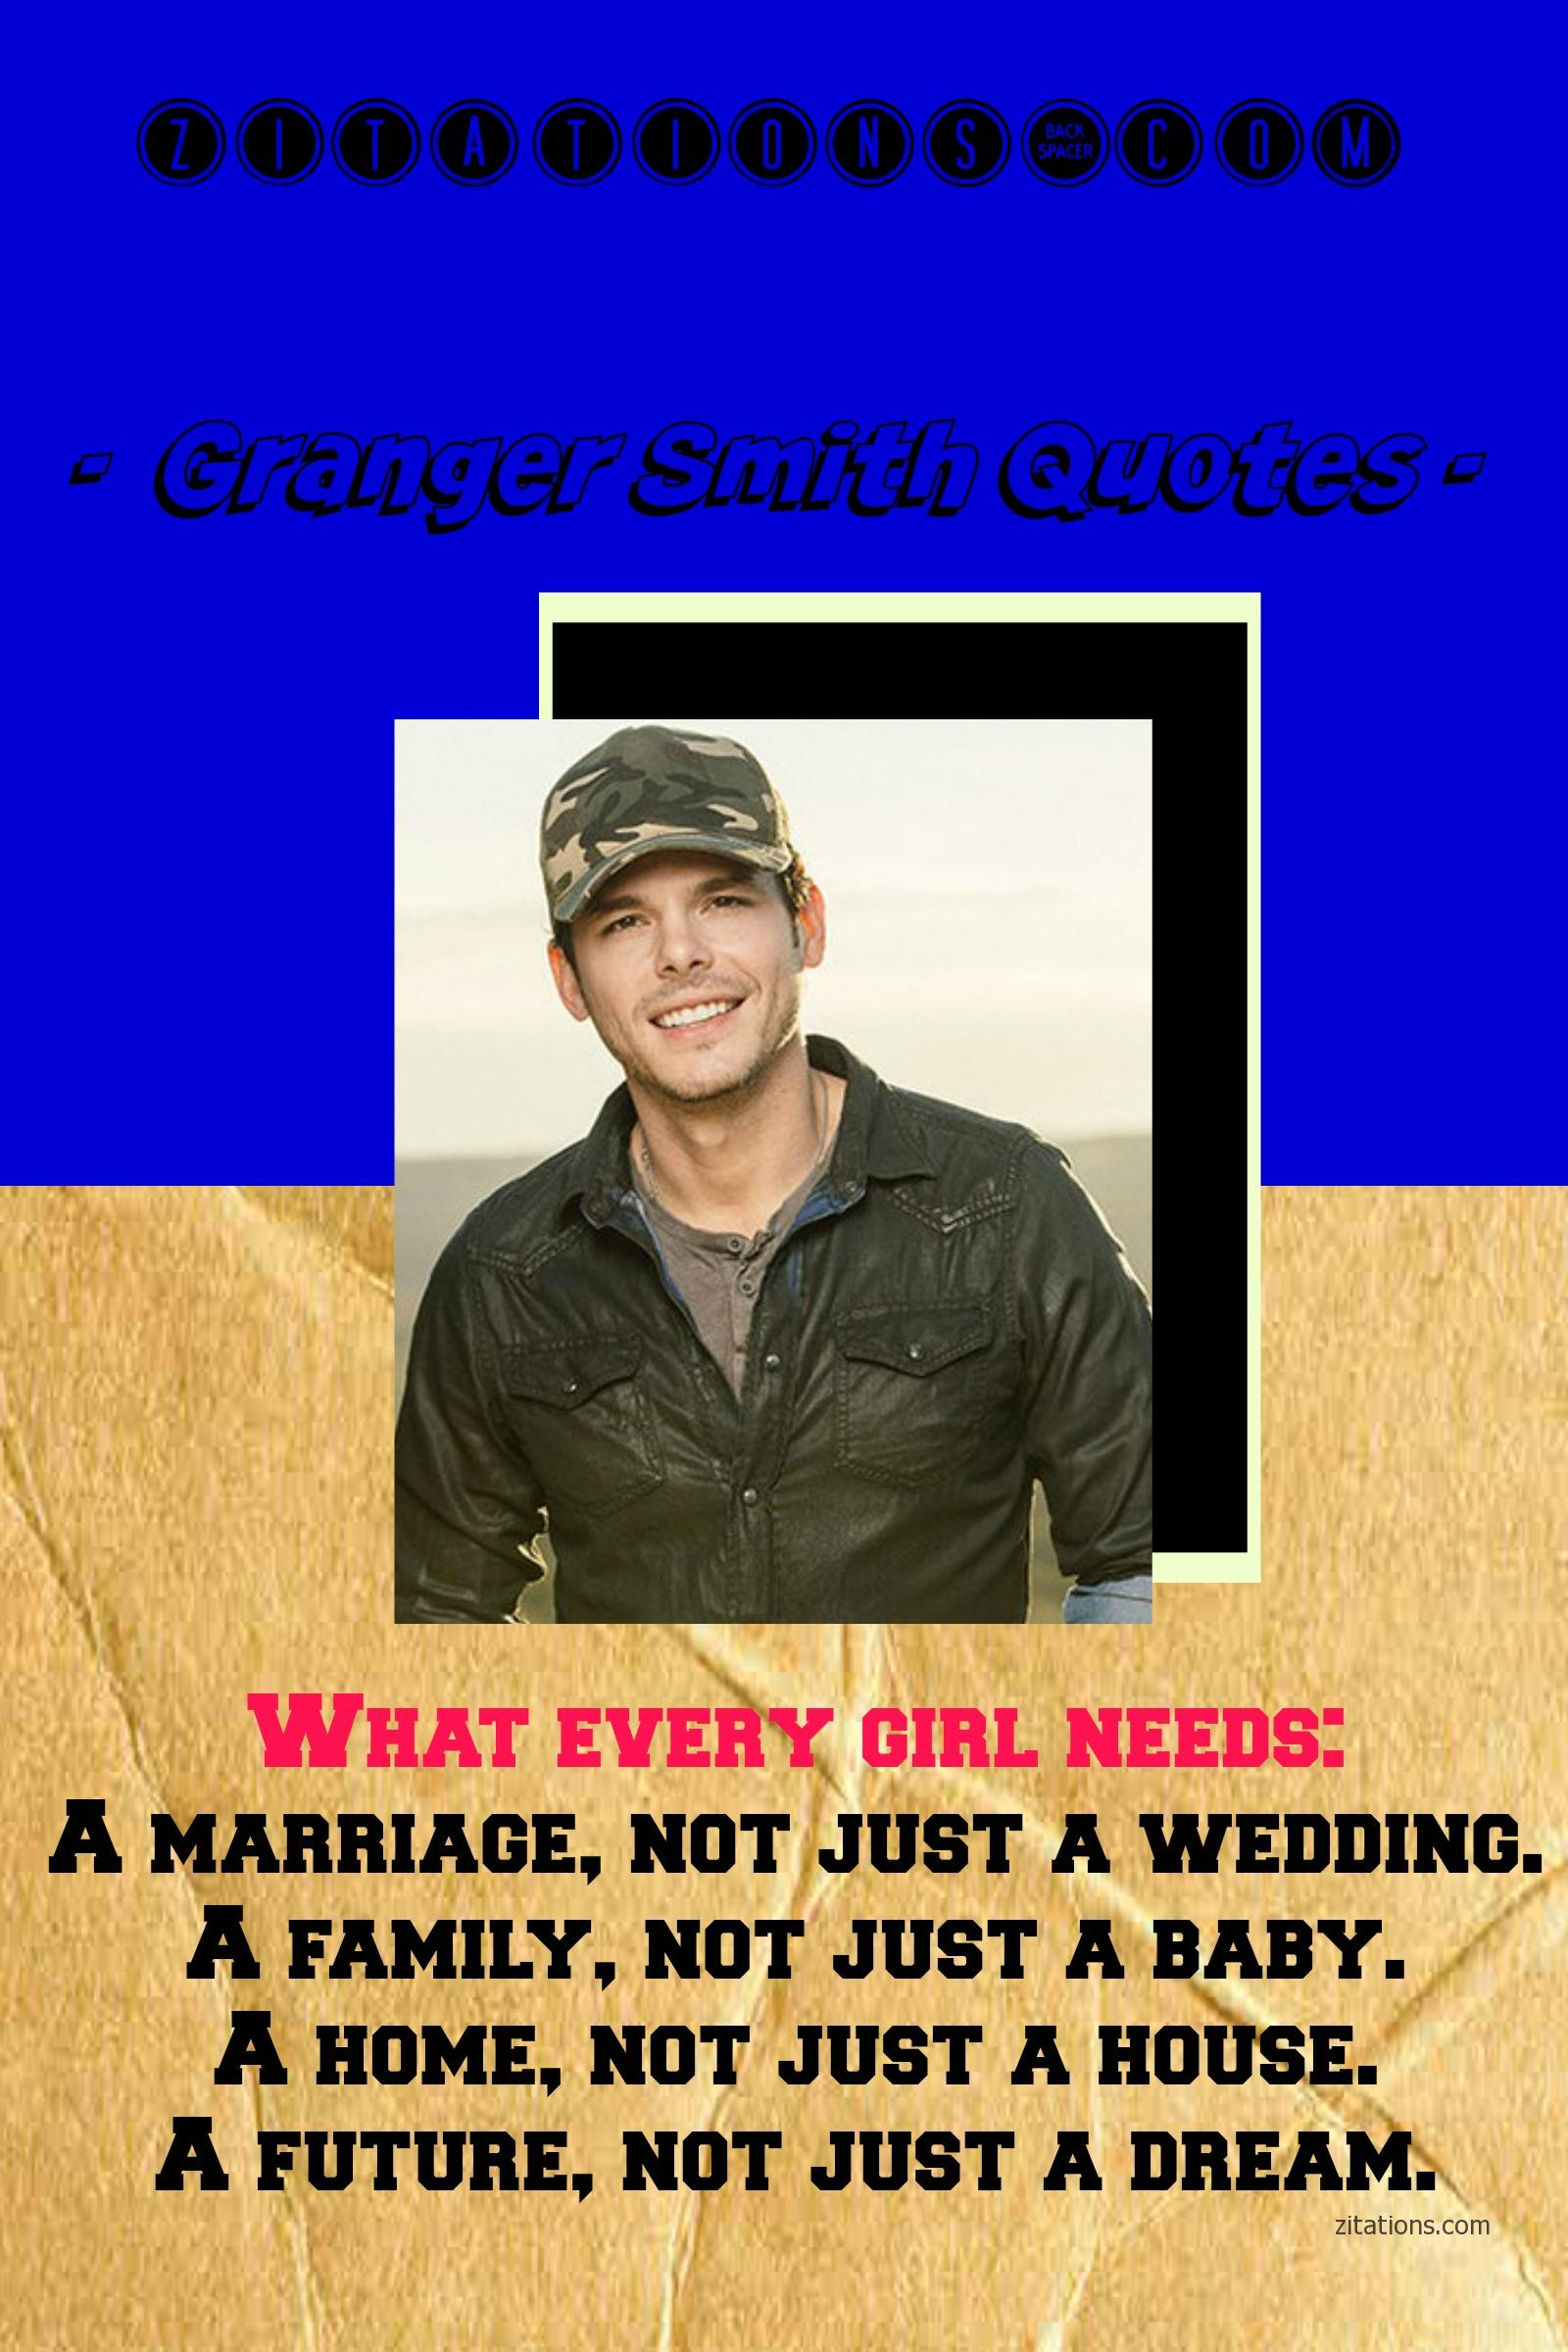 Granger Smith Quotes on girls